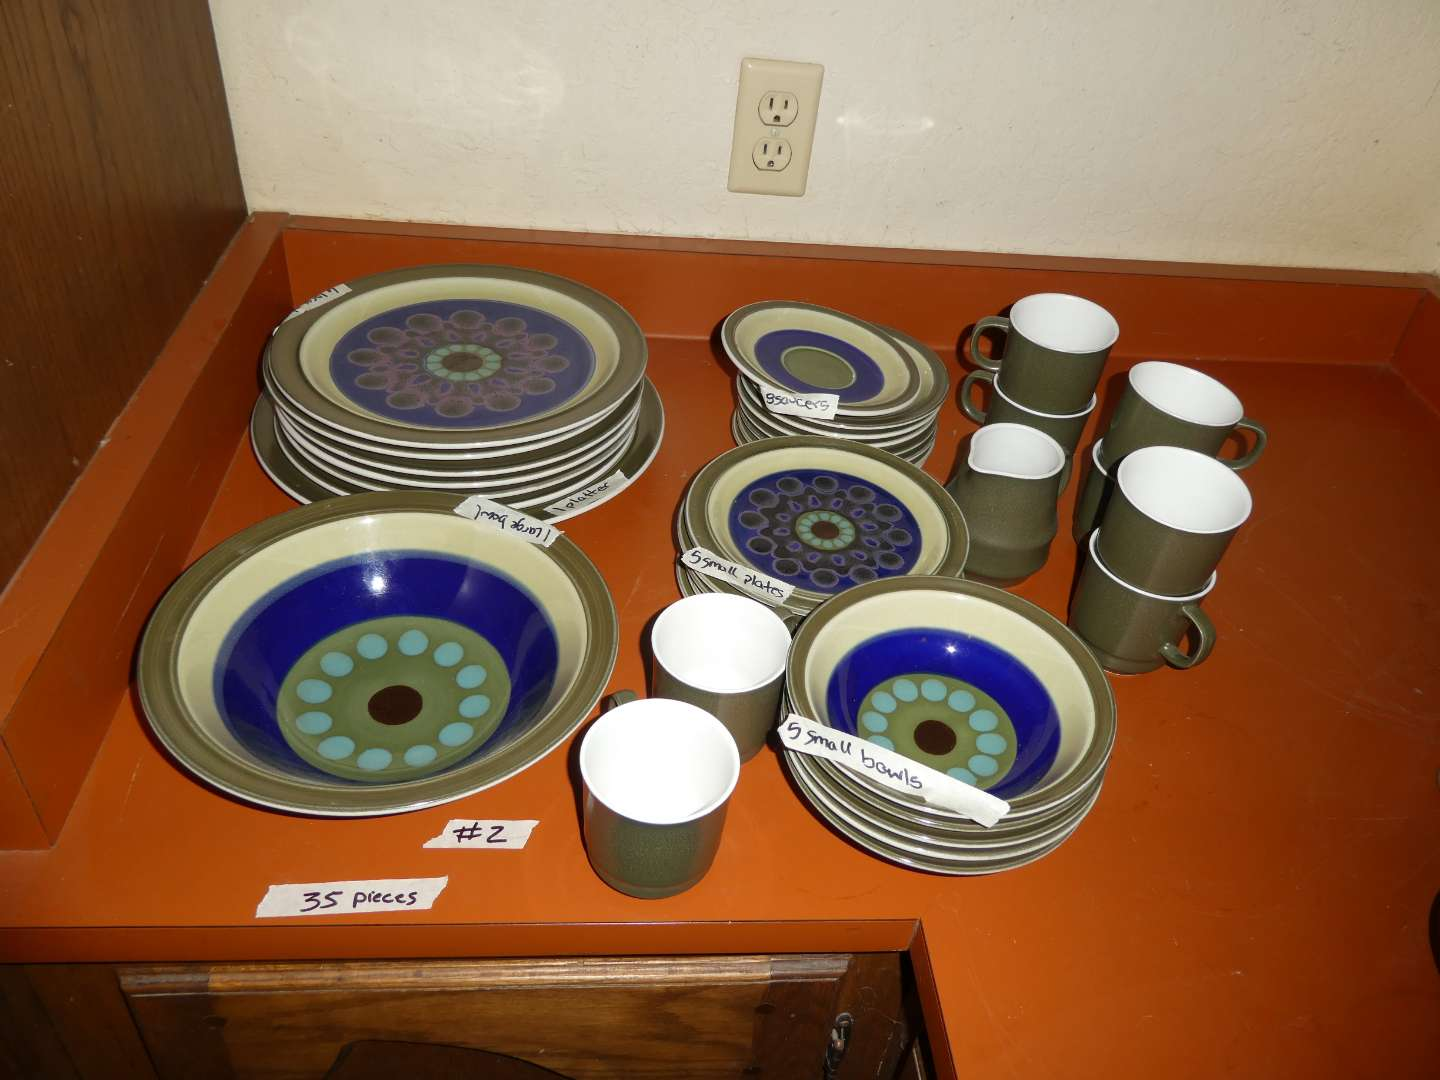 Lot # 2 - Mid Century Dishes And Mugs By Casual Ceram In Stardust Design (main image)